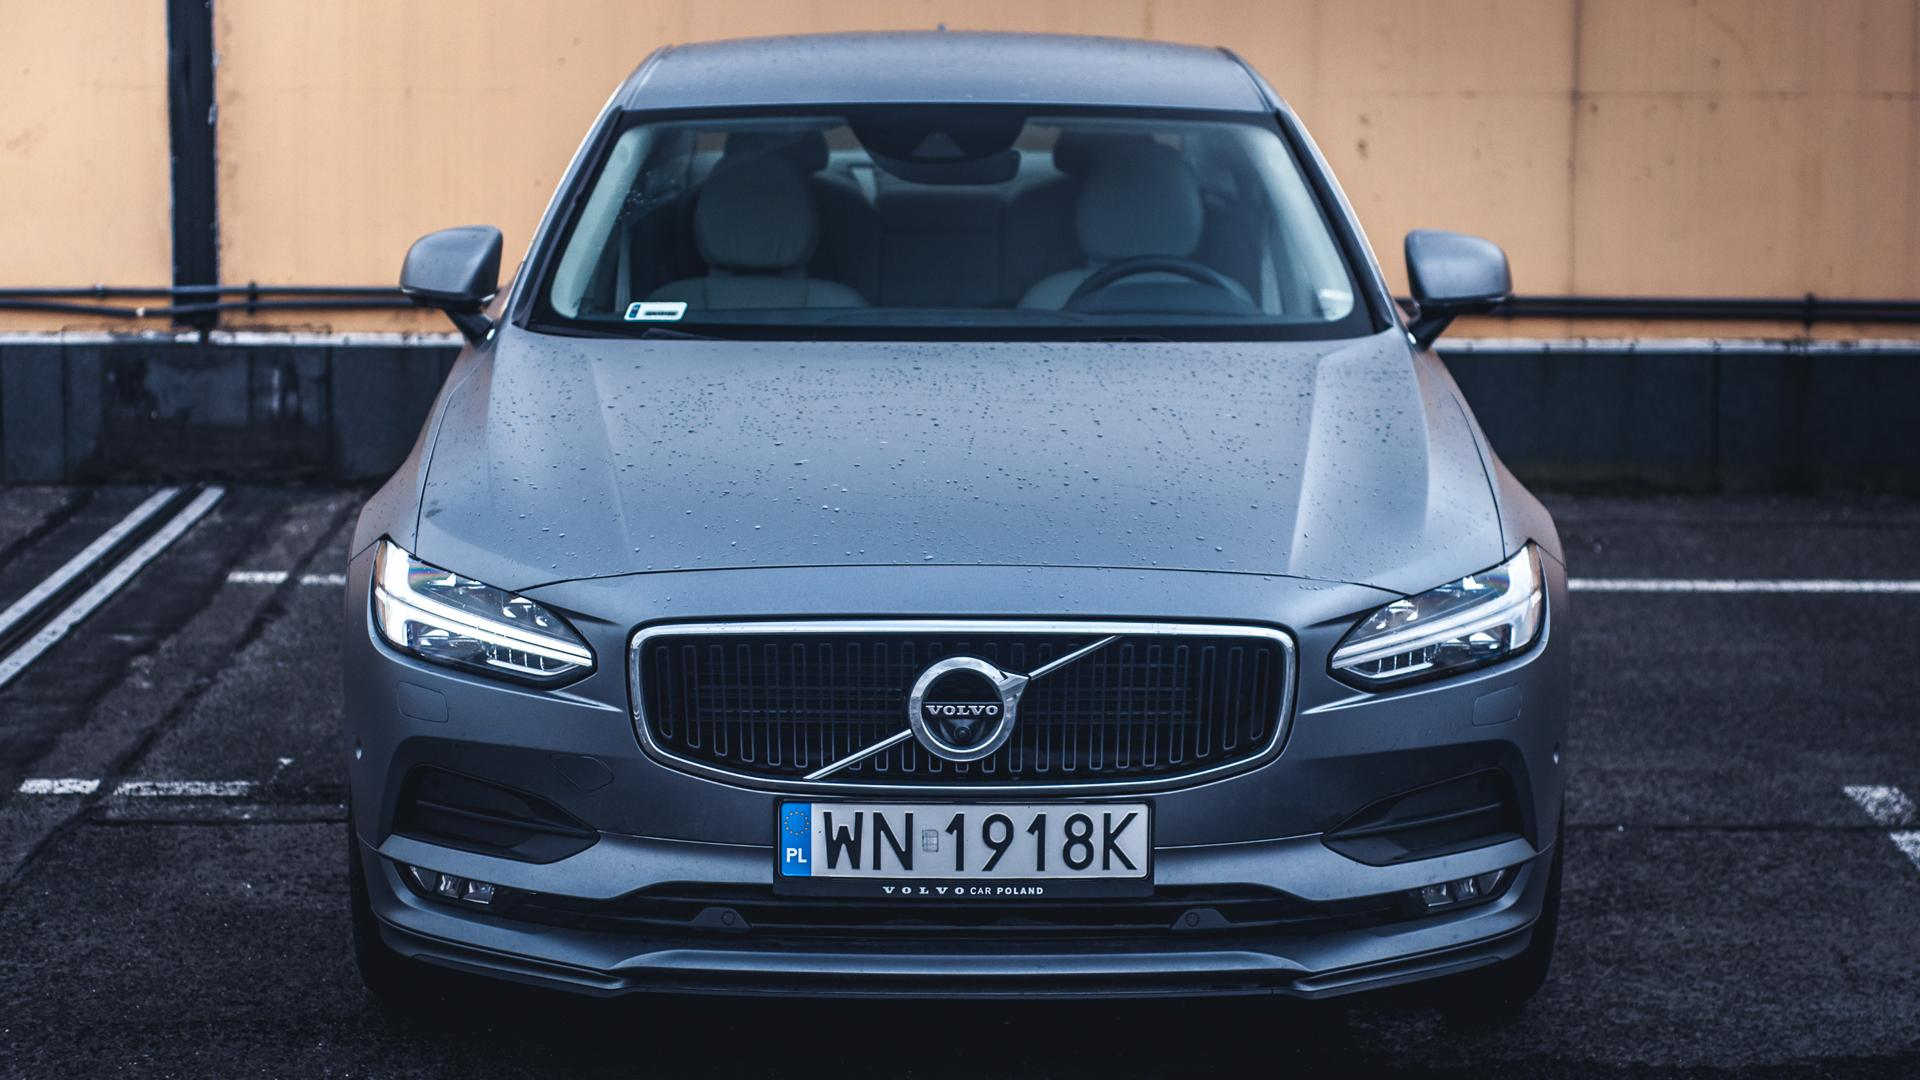 volvo s90 d4 polestar fabryczny chip tuning. Black Bedroom Furniture Sets. Home Design Ideas